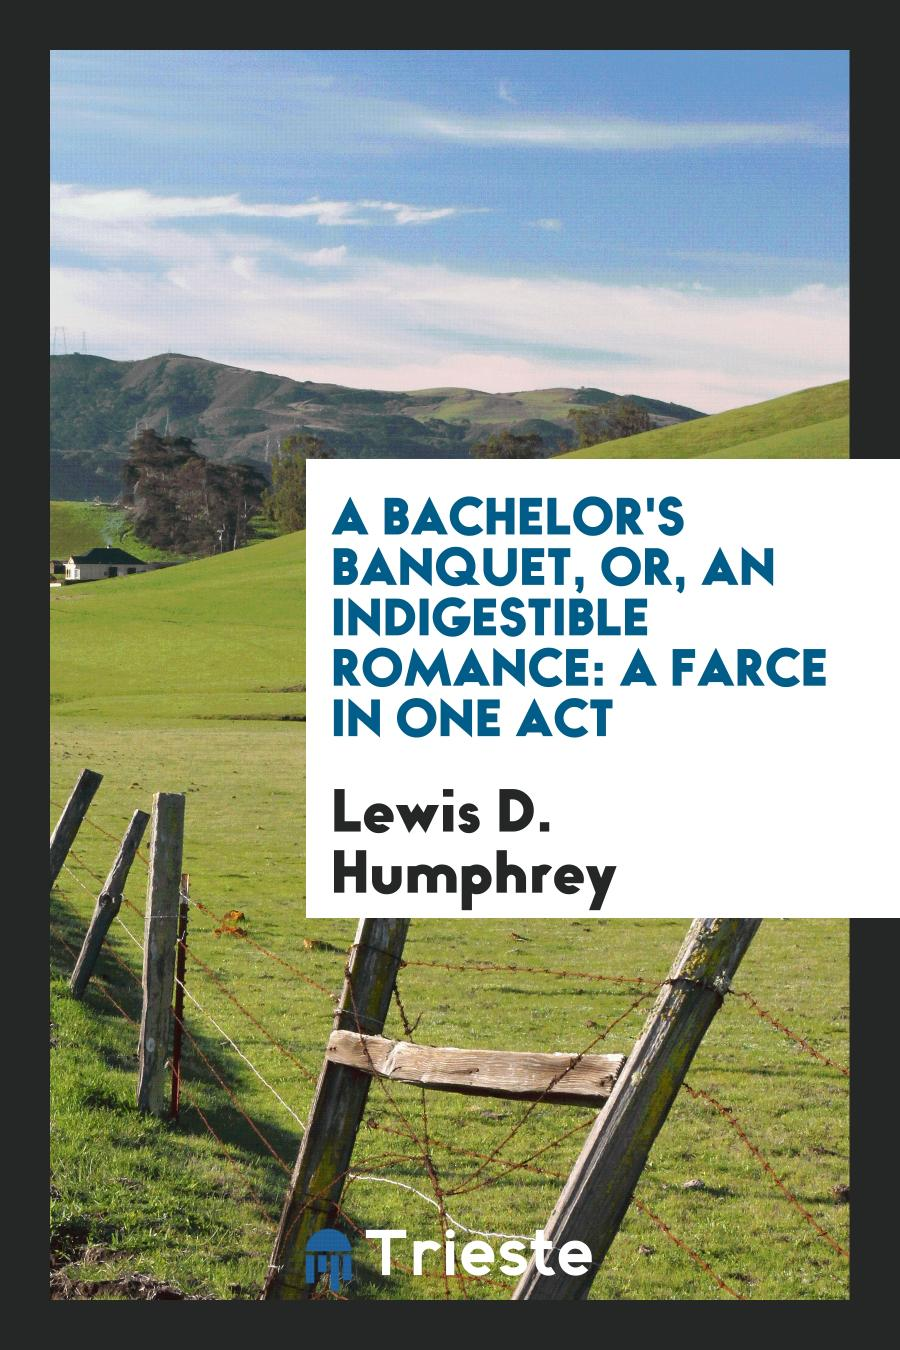 A Bachelor's Banquet, Or, An Indigestible Romance: A Farce in One Act